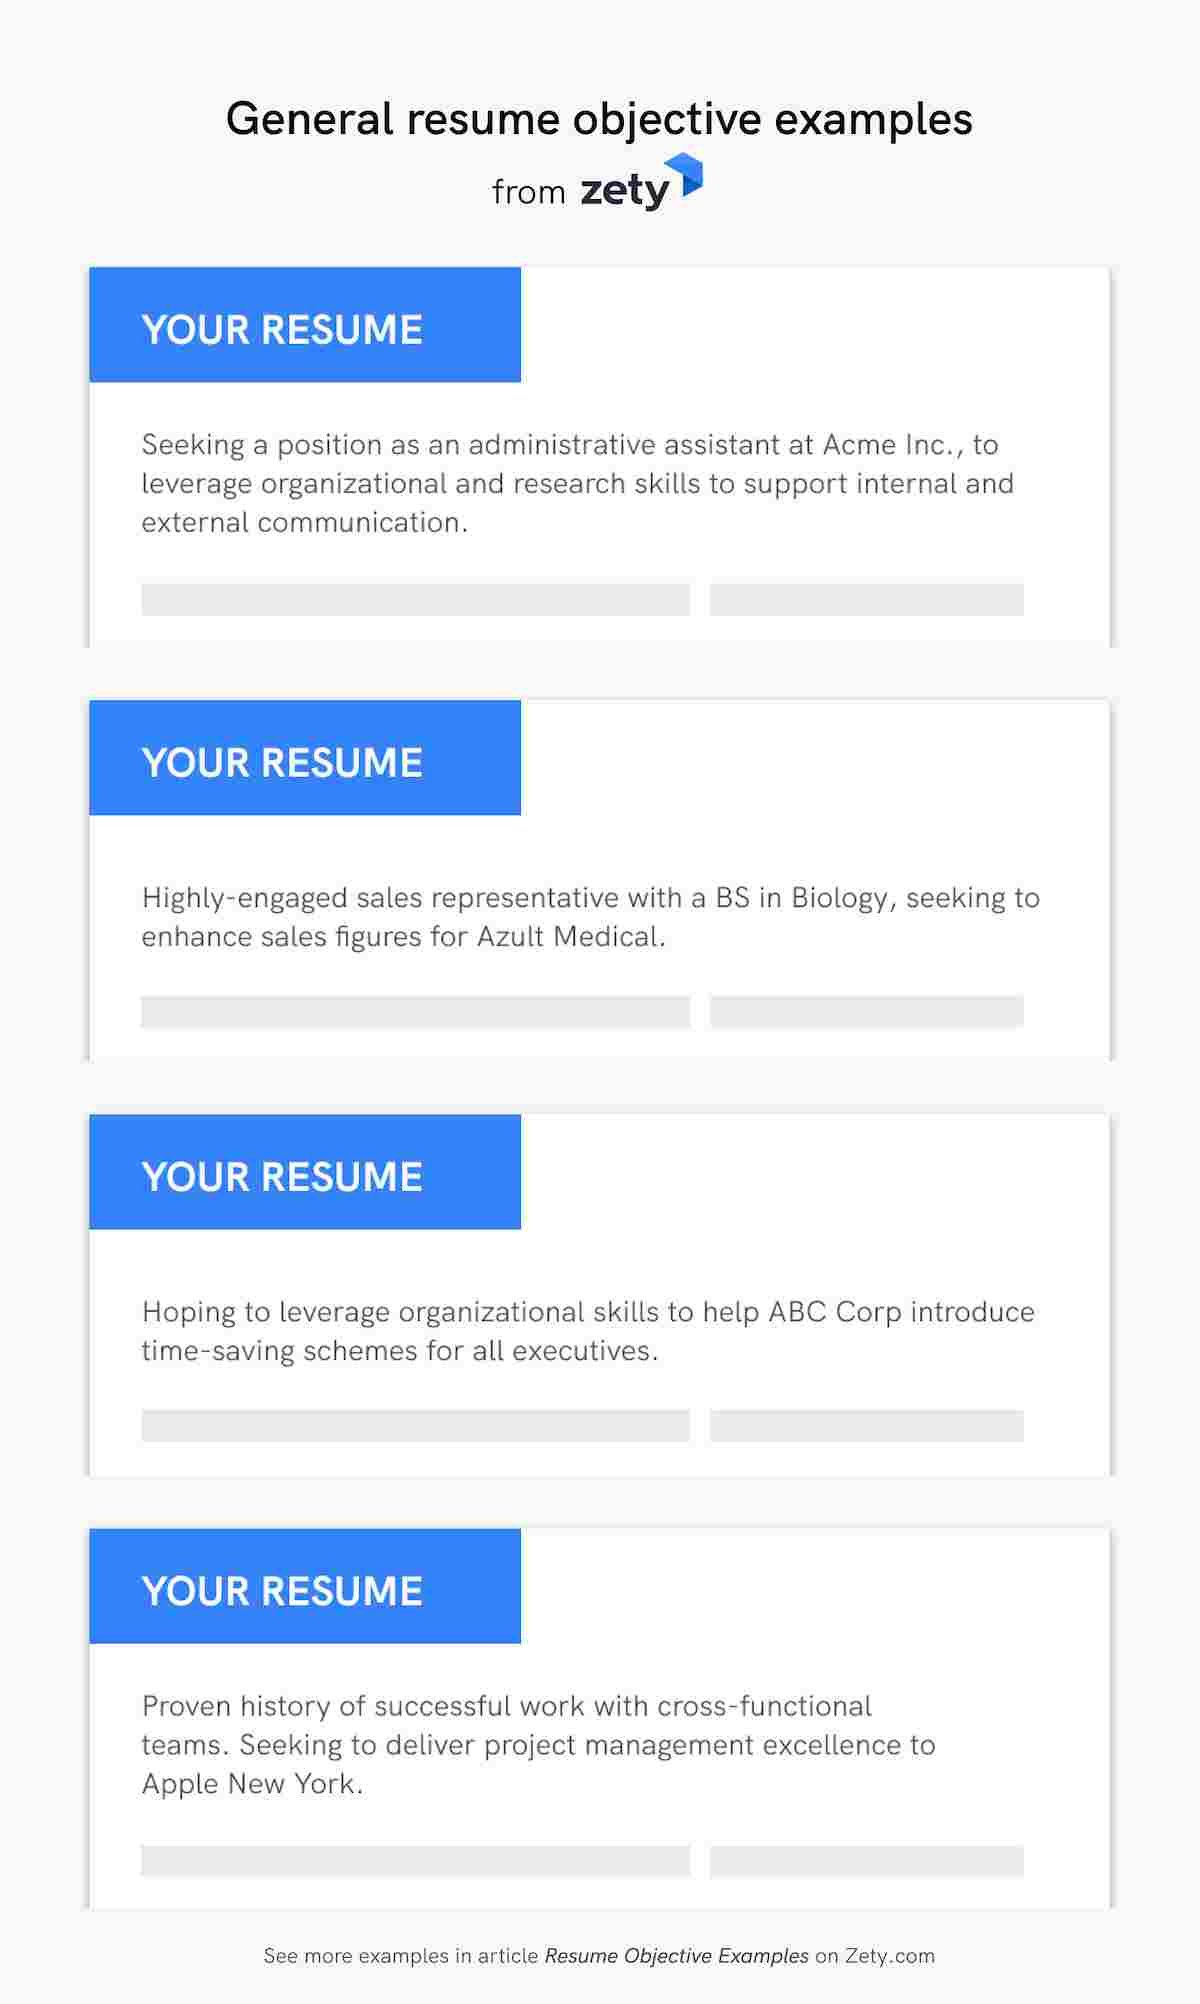 resume objective examples career objectives for all jobs first time job seekers general Resume Resume Objective For First Time Job Seekers